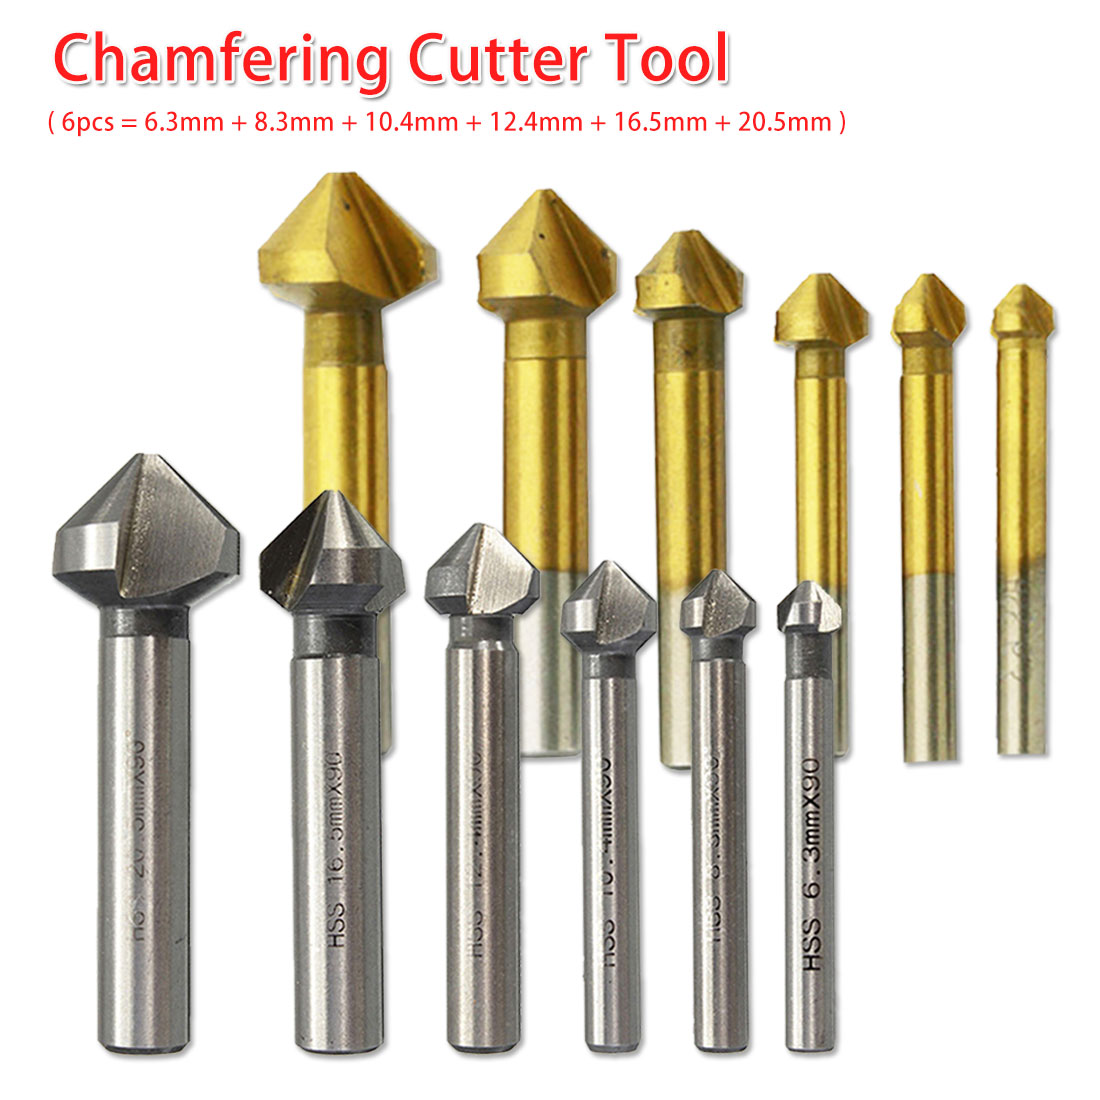 HSS Wood Steel Chamfer Cutter 6pcs/1pcs 3 Flute 90 Degree Countersink Drill Bit Round Handle 6.3-20.5mm For Carbon Steel/ PVC